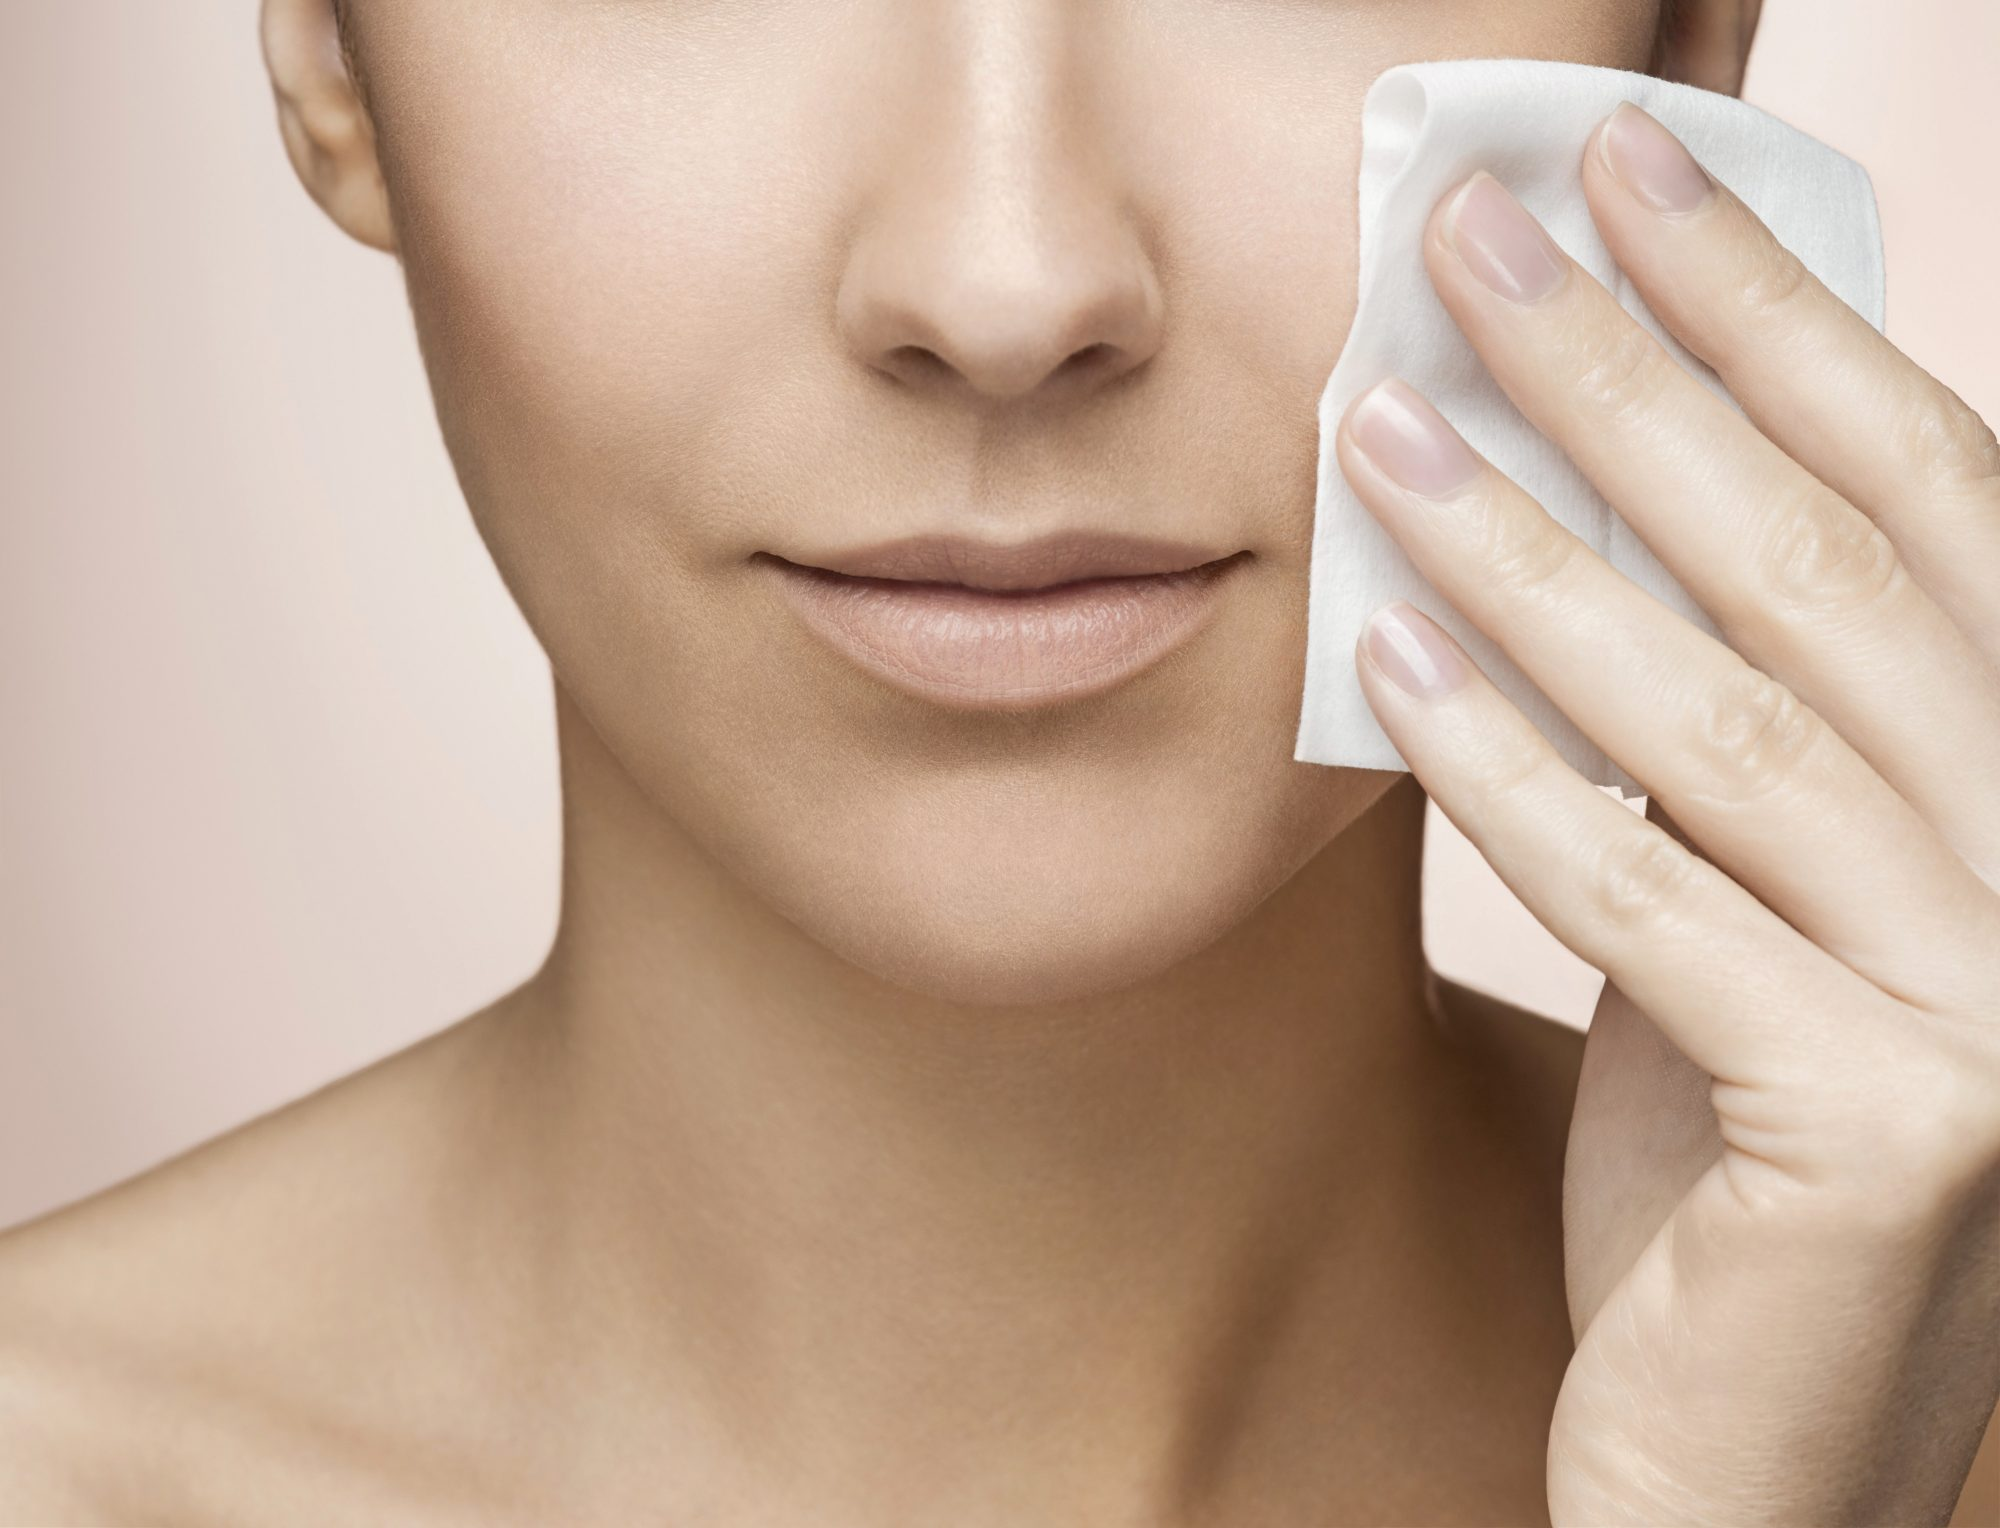 Use This Simple Test to Determine Your Skin Type Once and For All